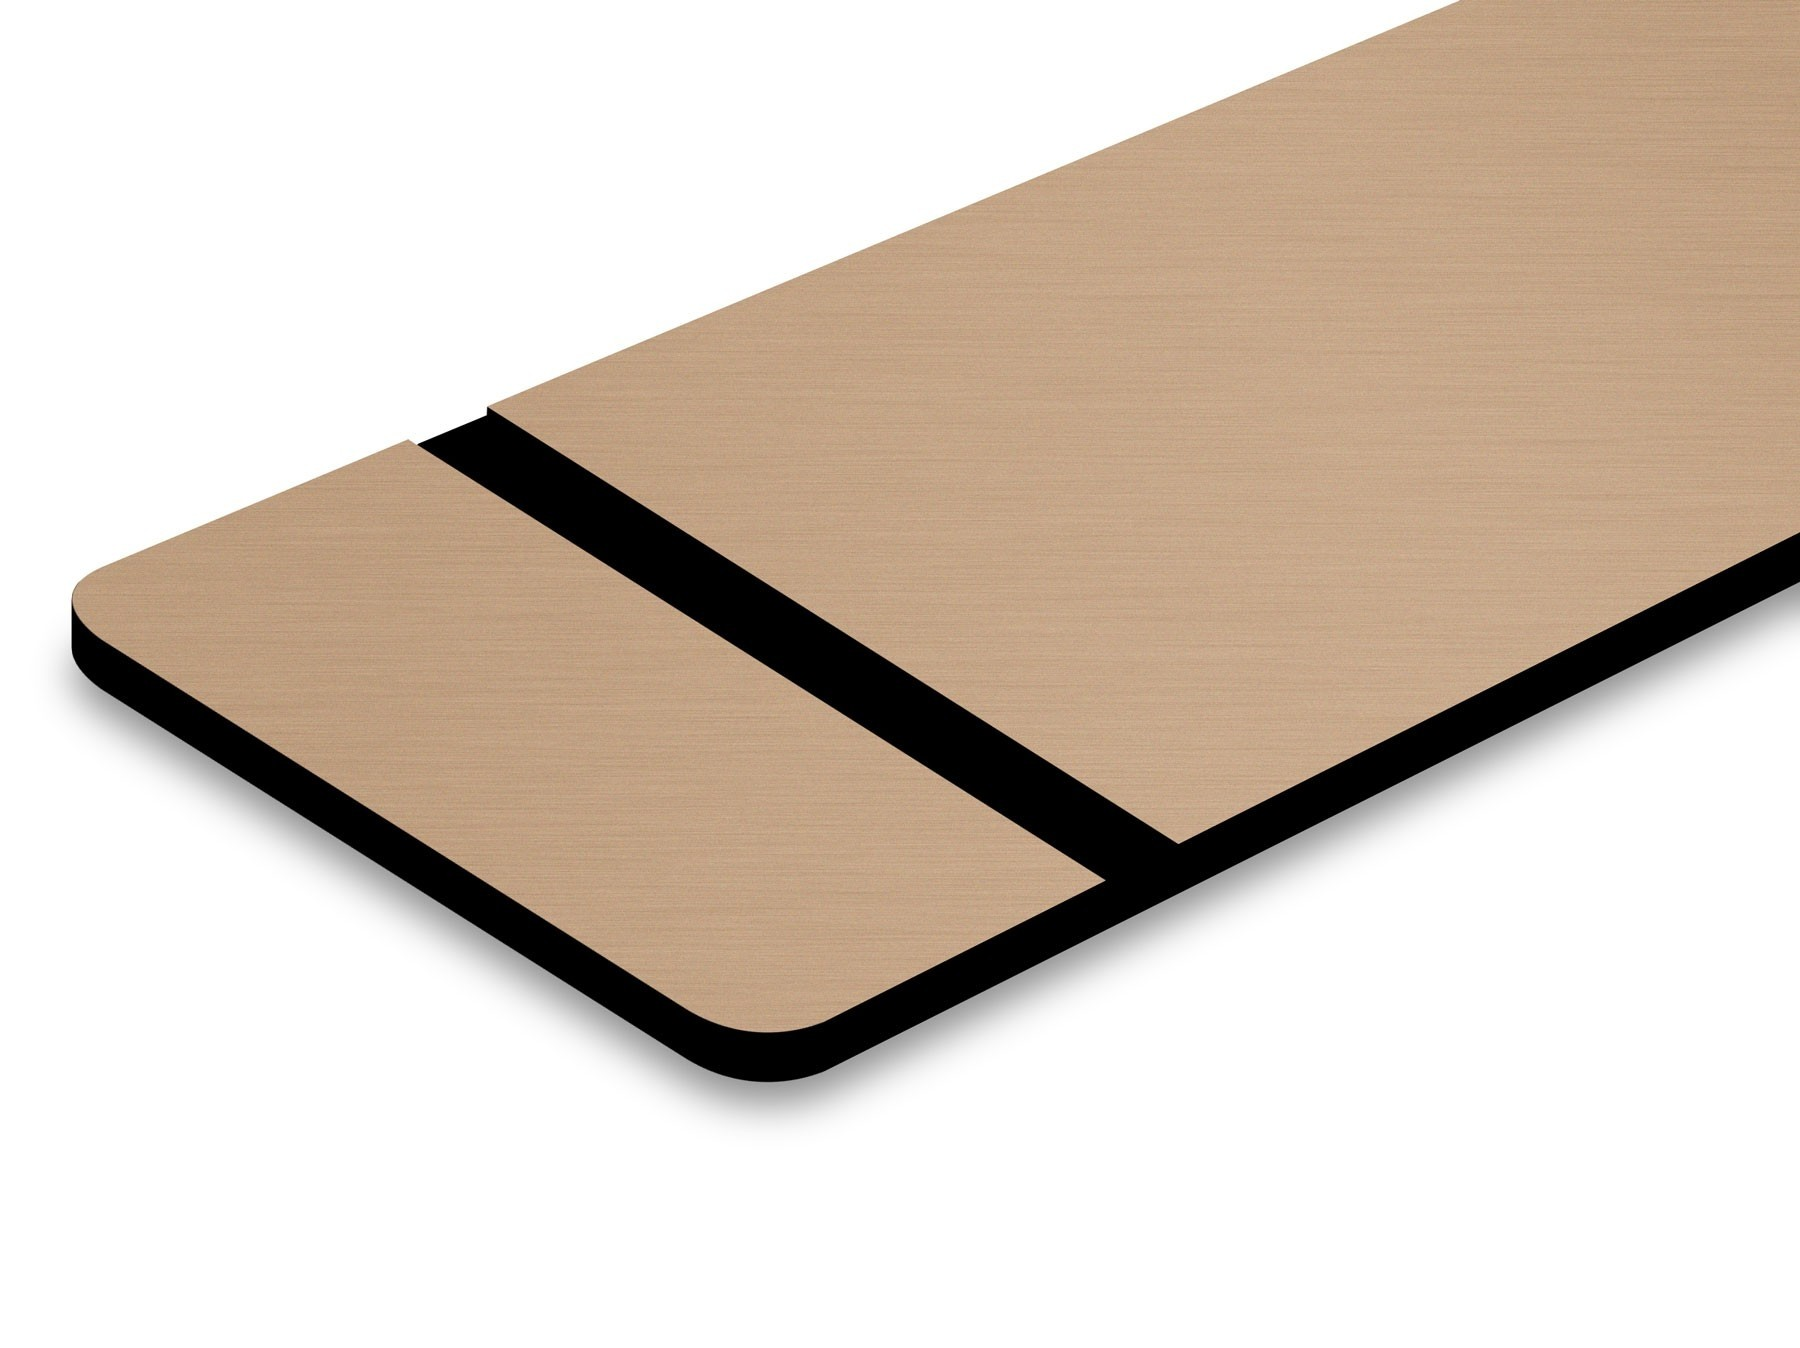 TroLase Metallic, Brushed Copper/Black, 2ply, 0.8 mm